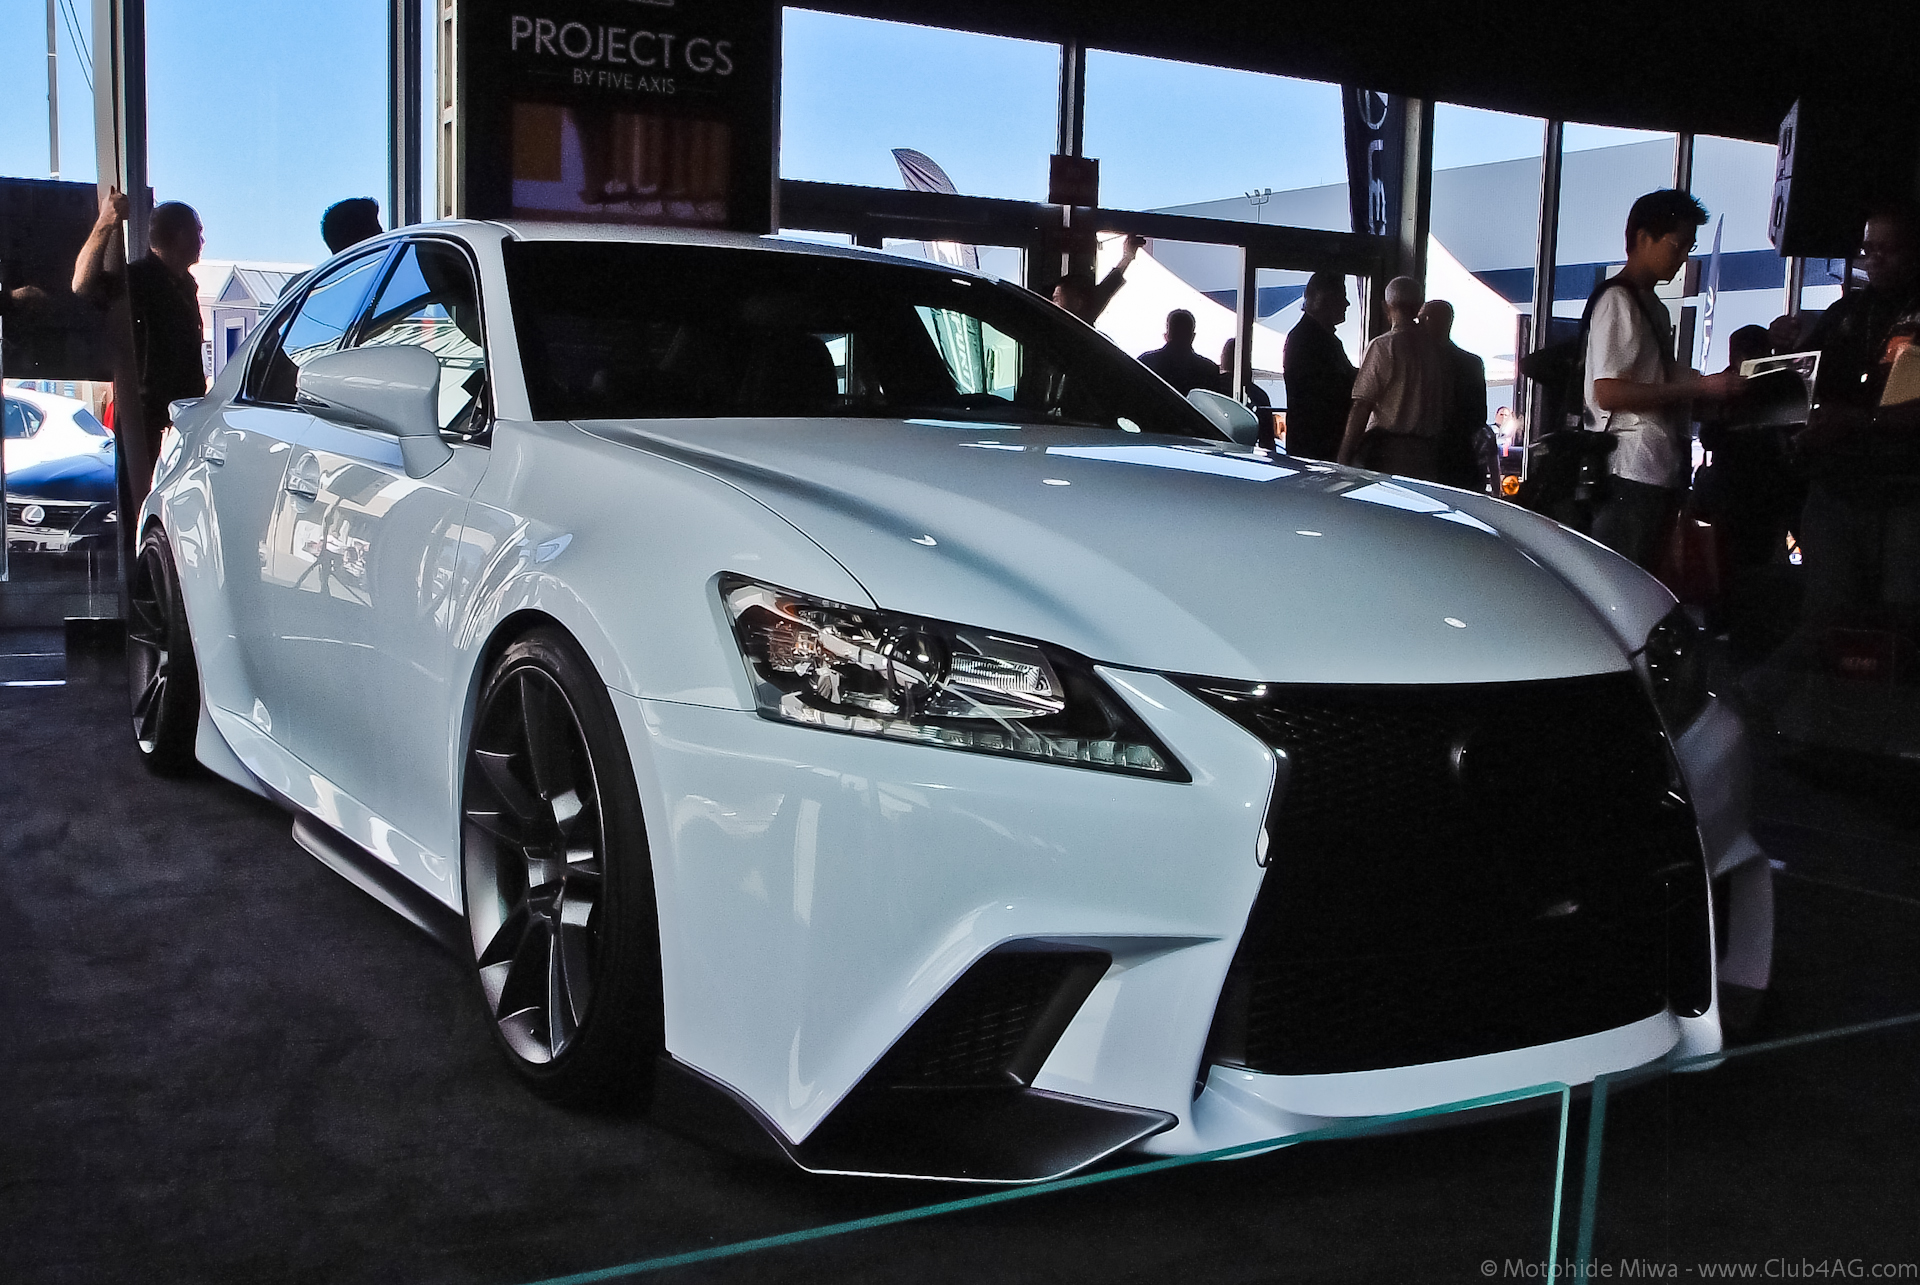 File Five Axis Lexus Gs Concept 2017 Flickr Moto Club4ag 3 Jpg